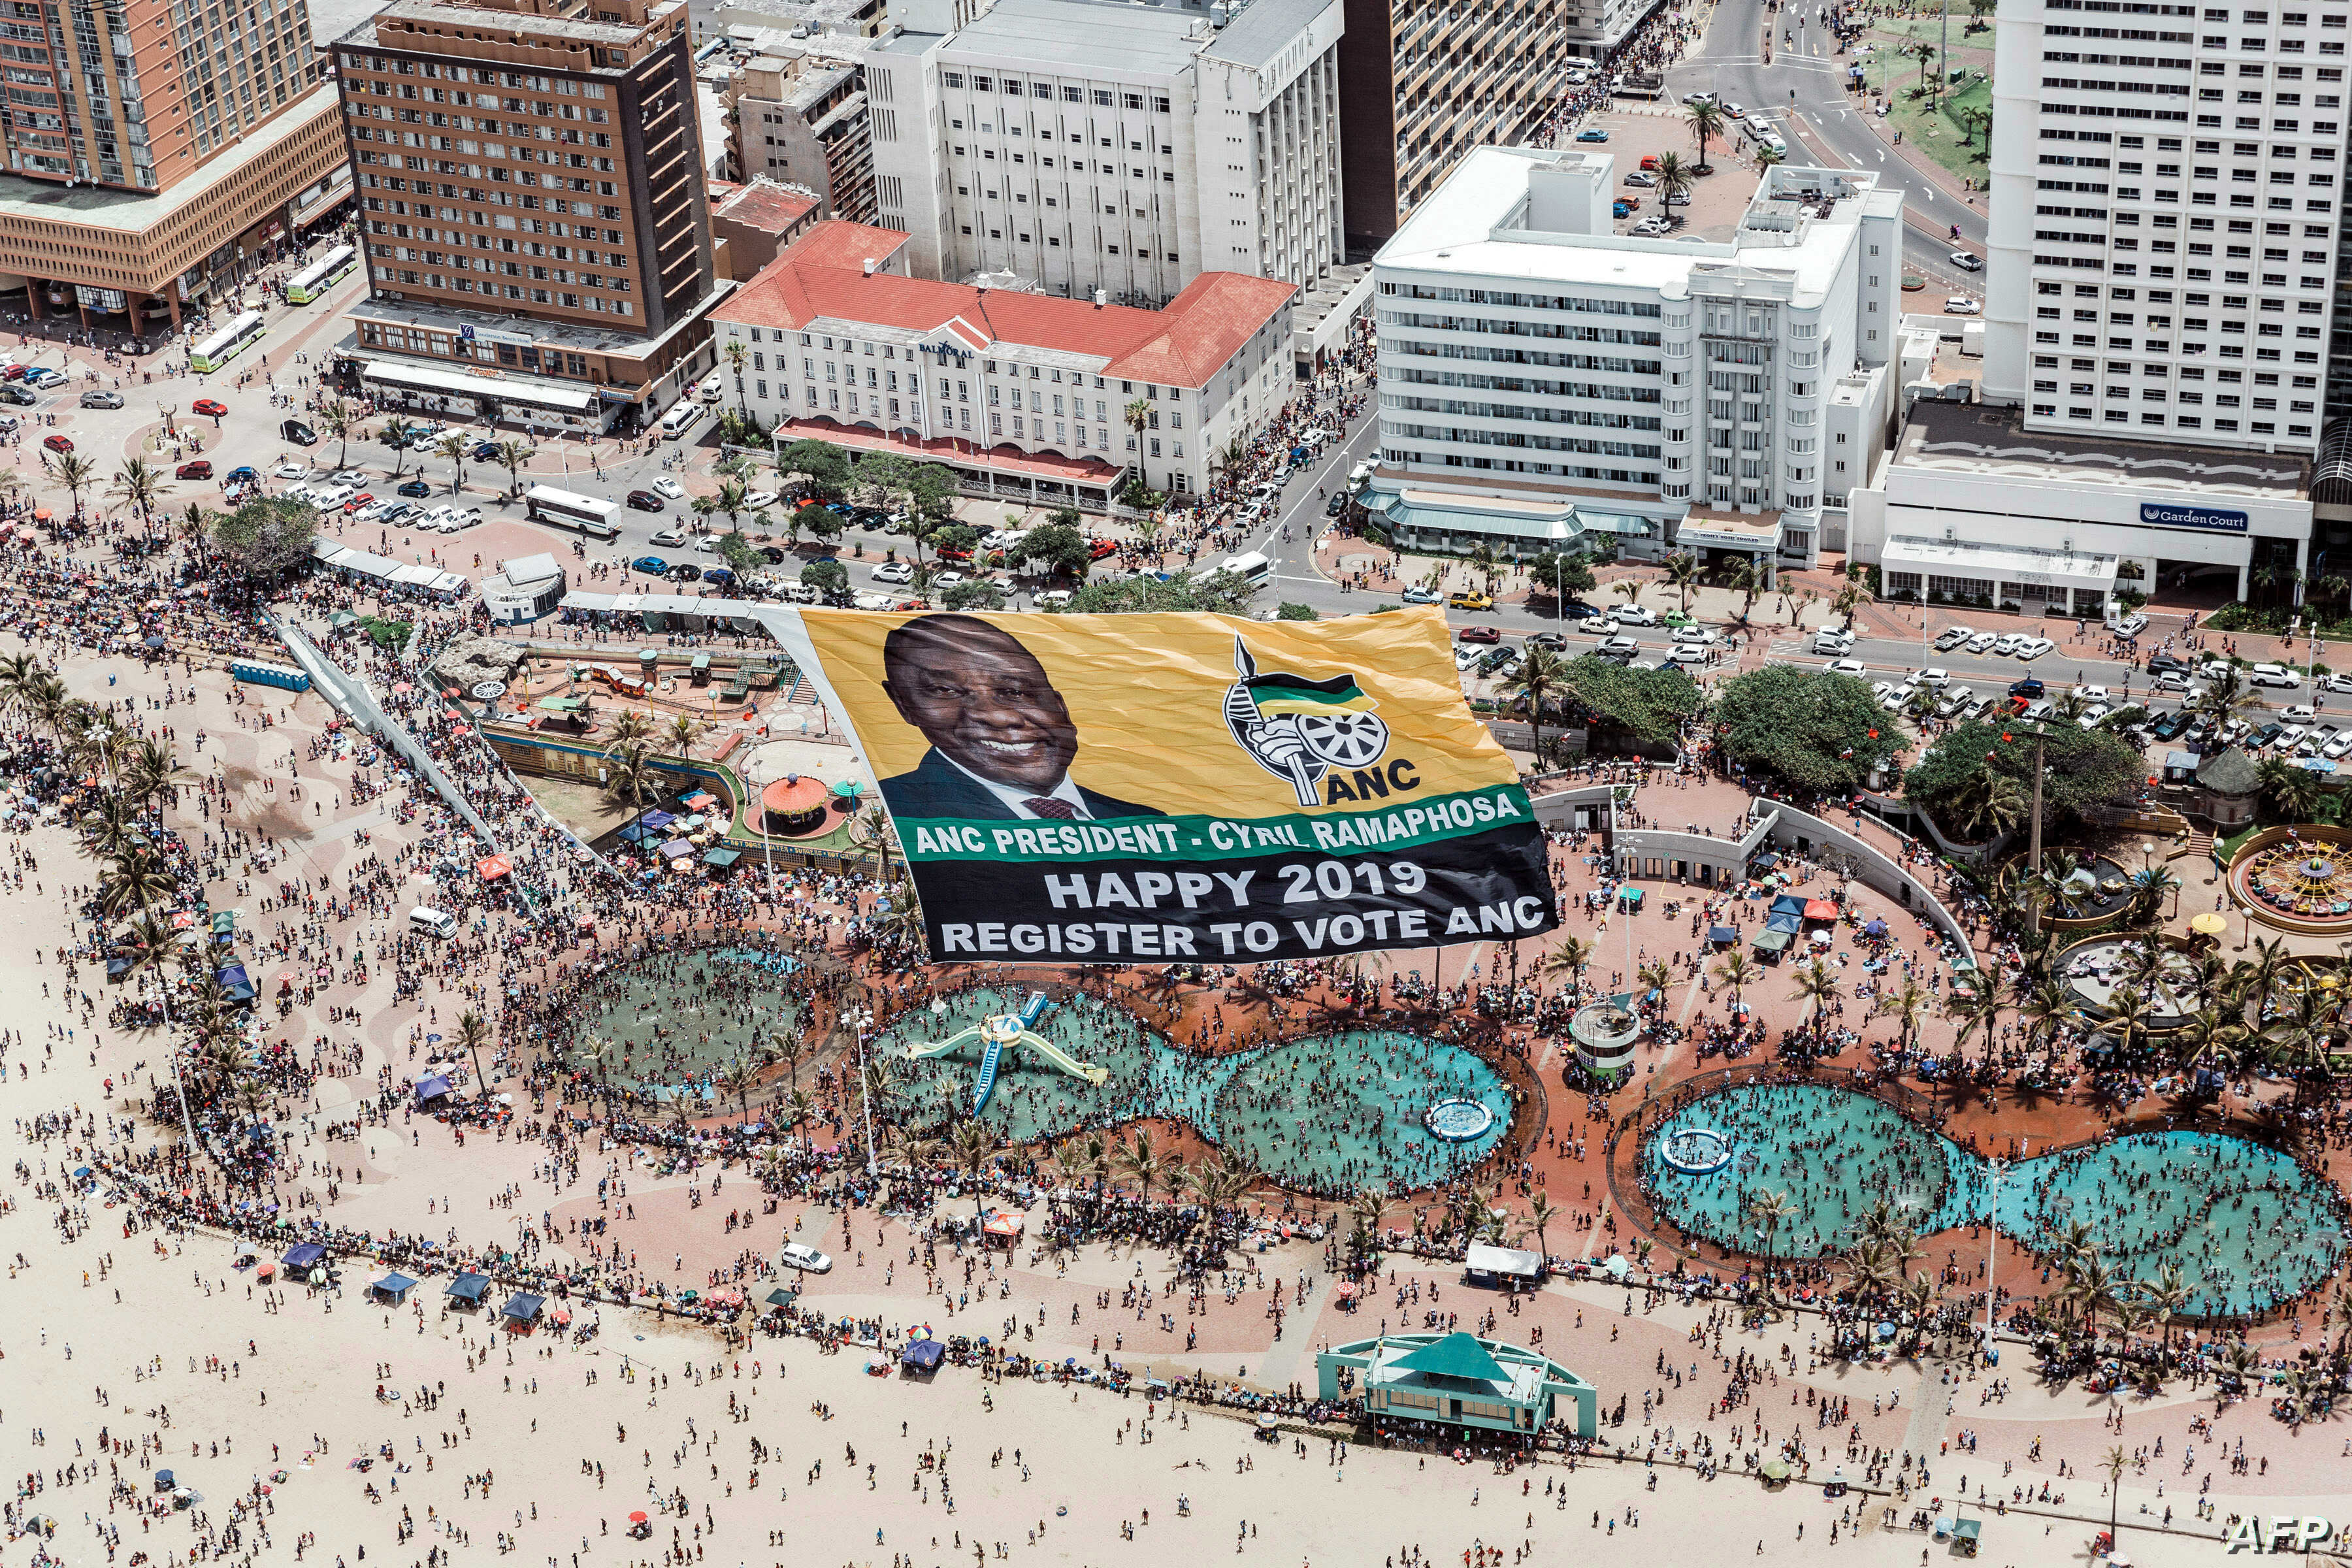 An aerial view shows a helicopter flying a giant flag of the South Africa's ruling African National Congress (ANC) displaying a picture of South African President Cyril Ramaphosa and urging people to register to vote for upcoming elections.